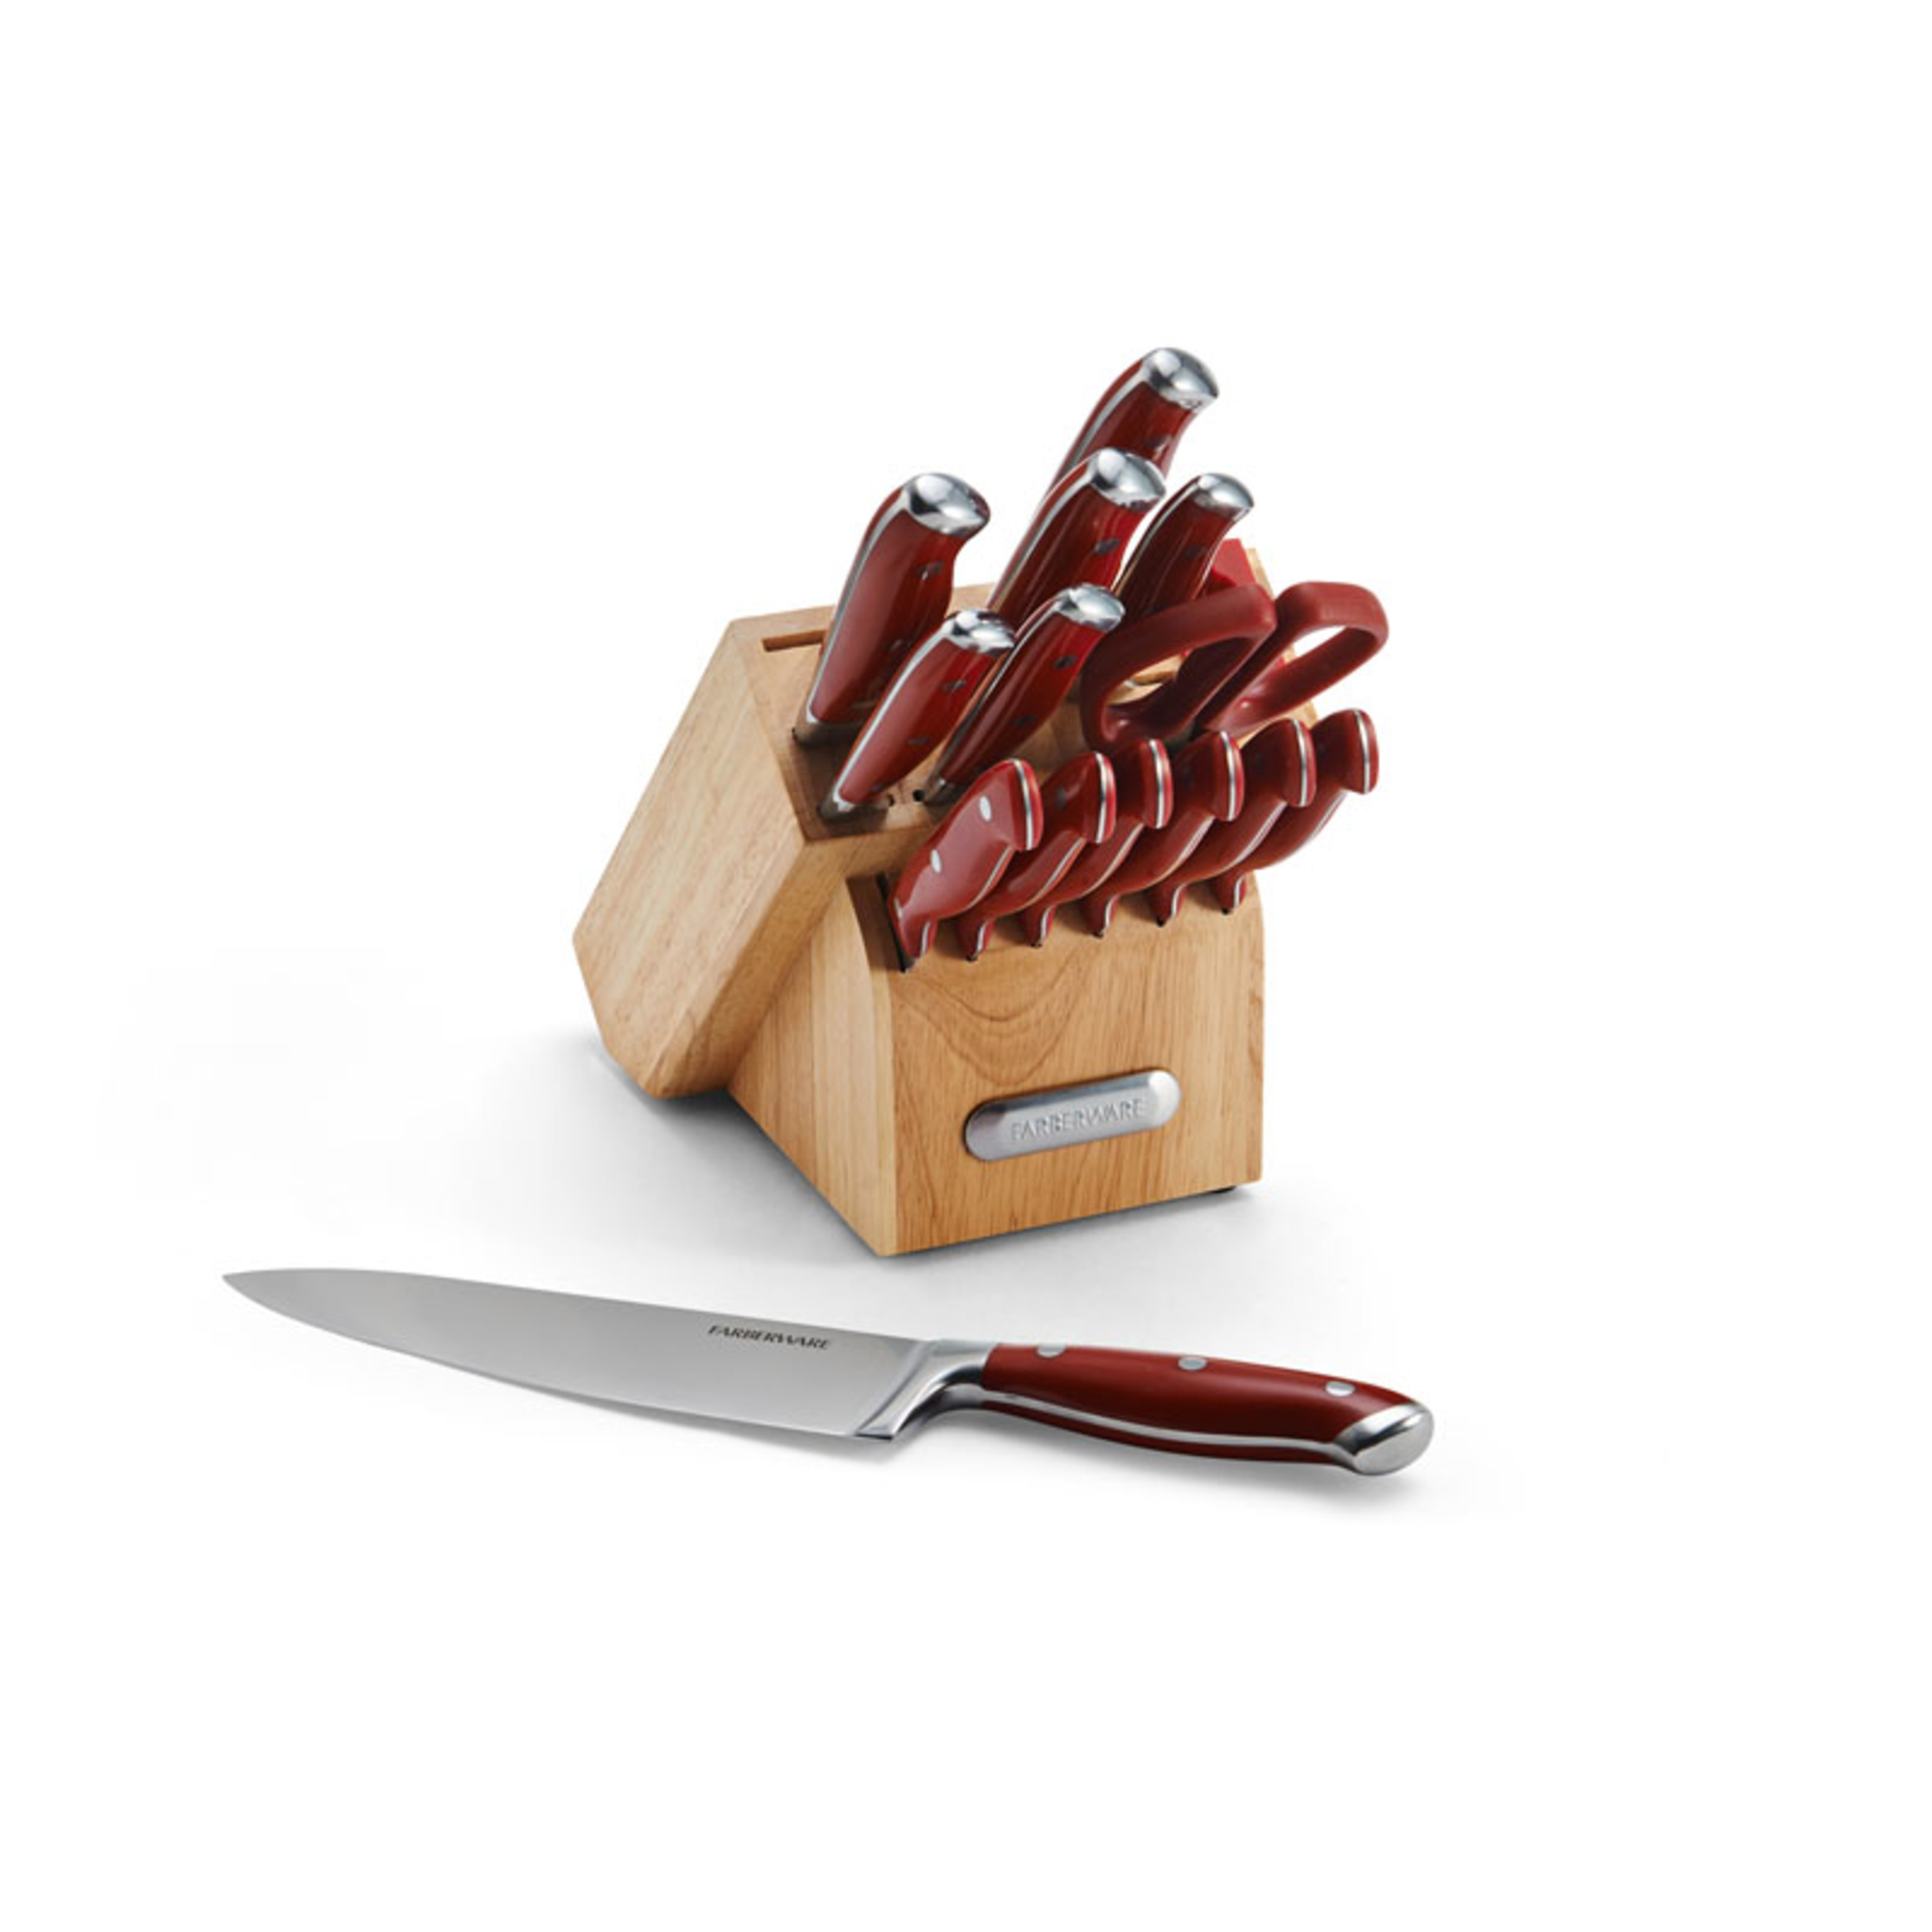 Farberware Edgekeeper 15-Piece Forged Triple-Riveted Knife Set by Lifetime Brands